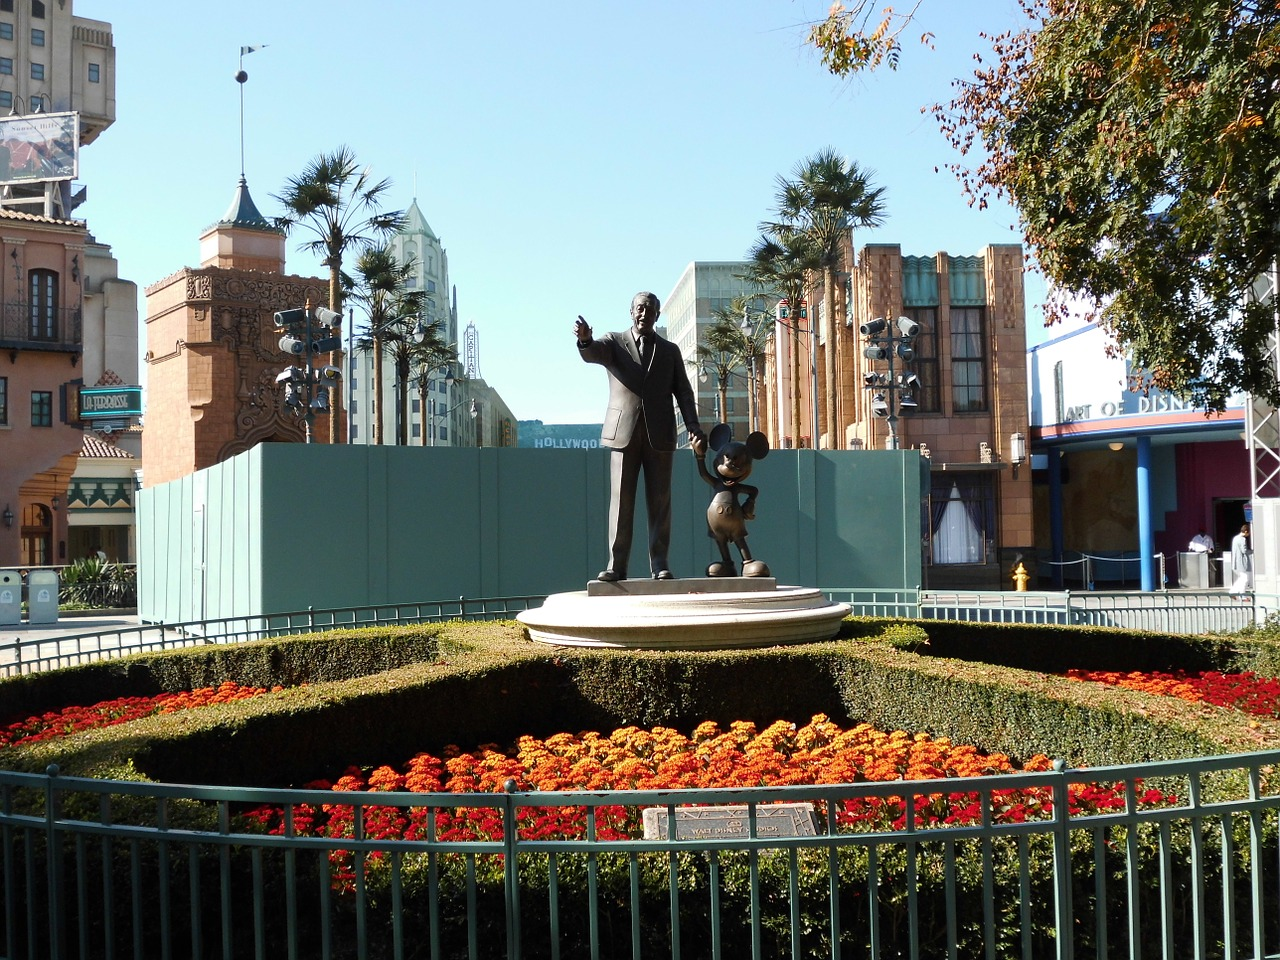 walt disney,disney,art,sculpture,disneyland,paris,france,monument,mickey mouse,free pictures, free photos, free images, royalty free, free illustrations, public domain